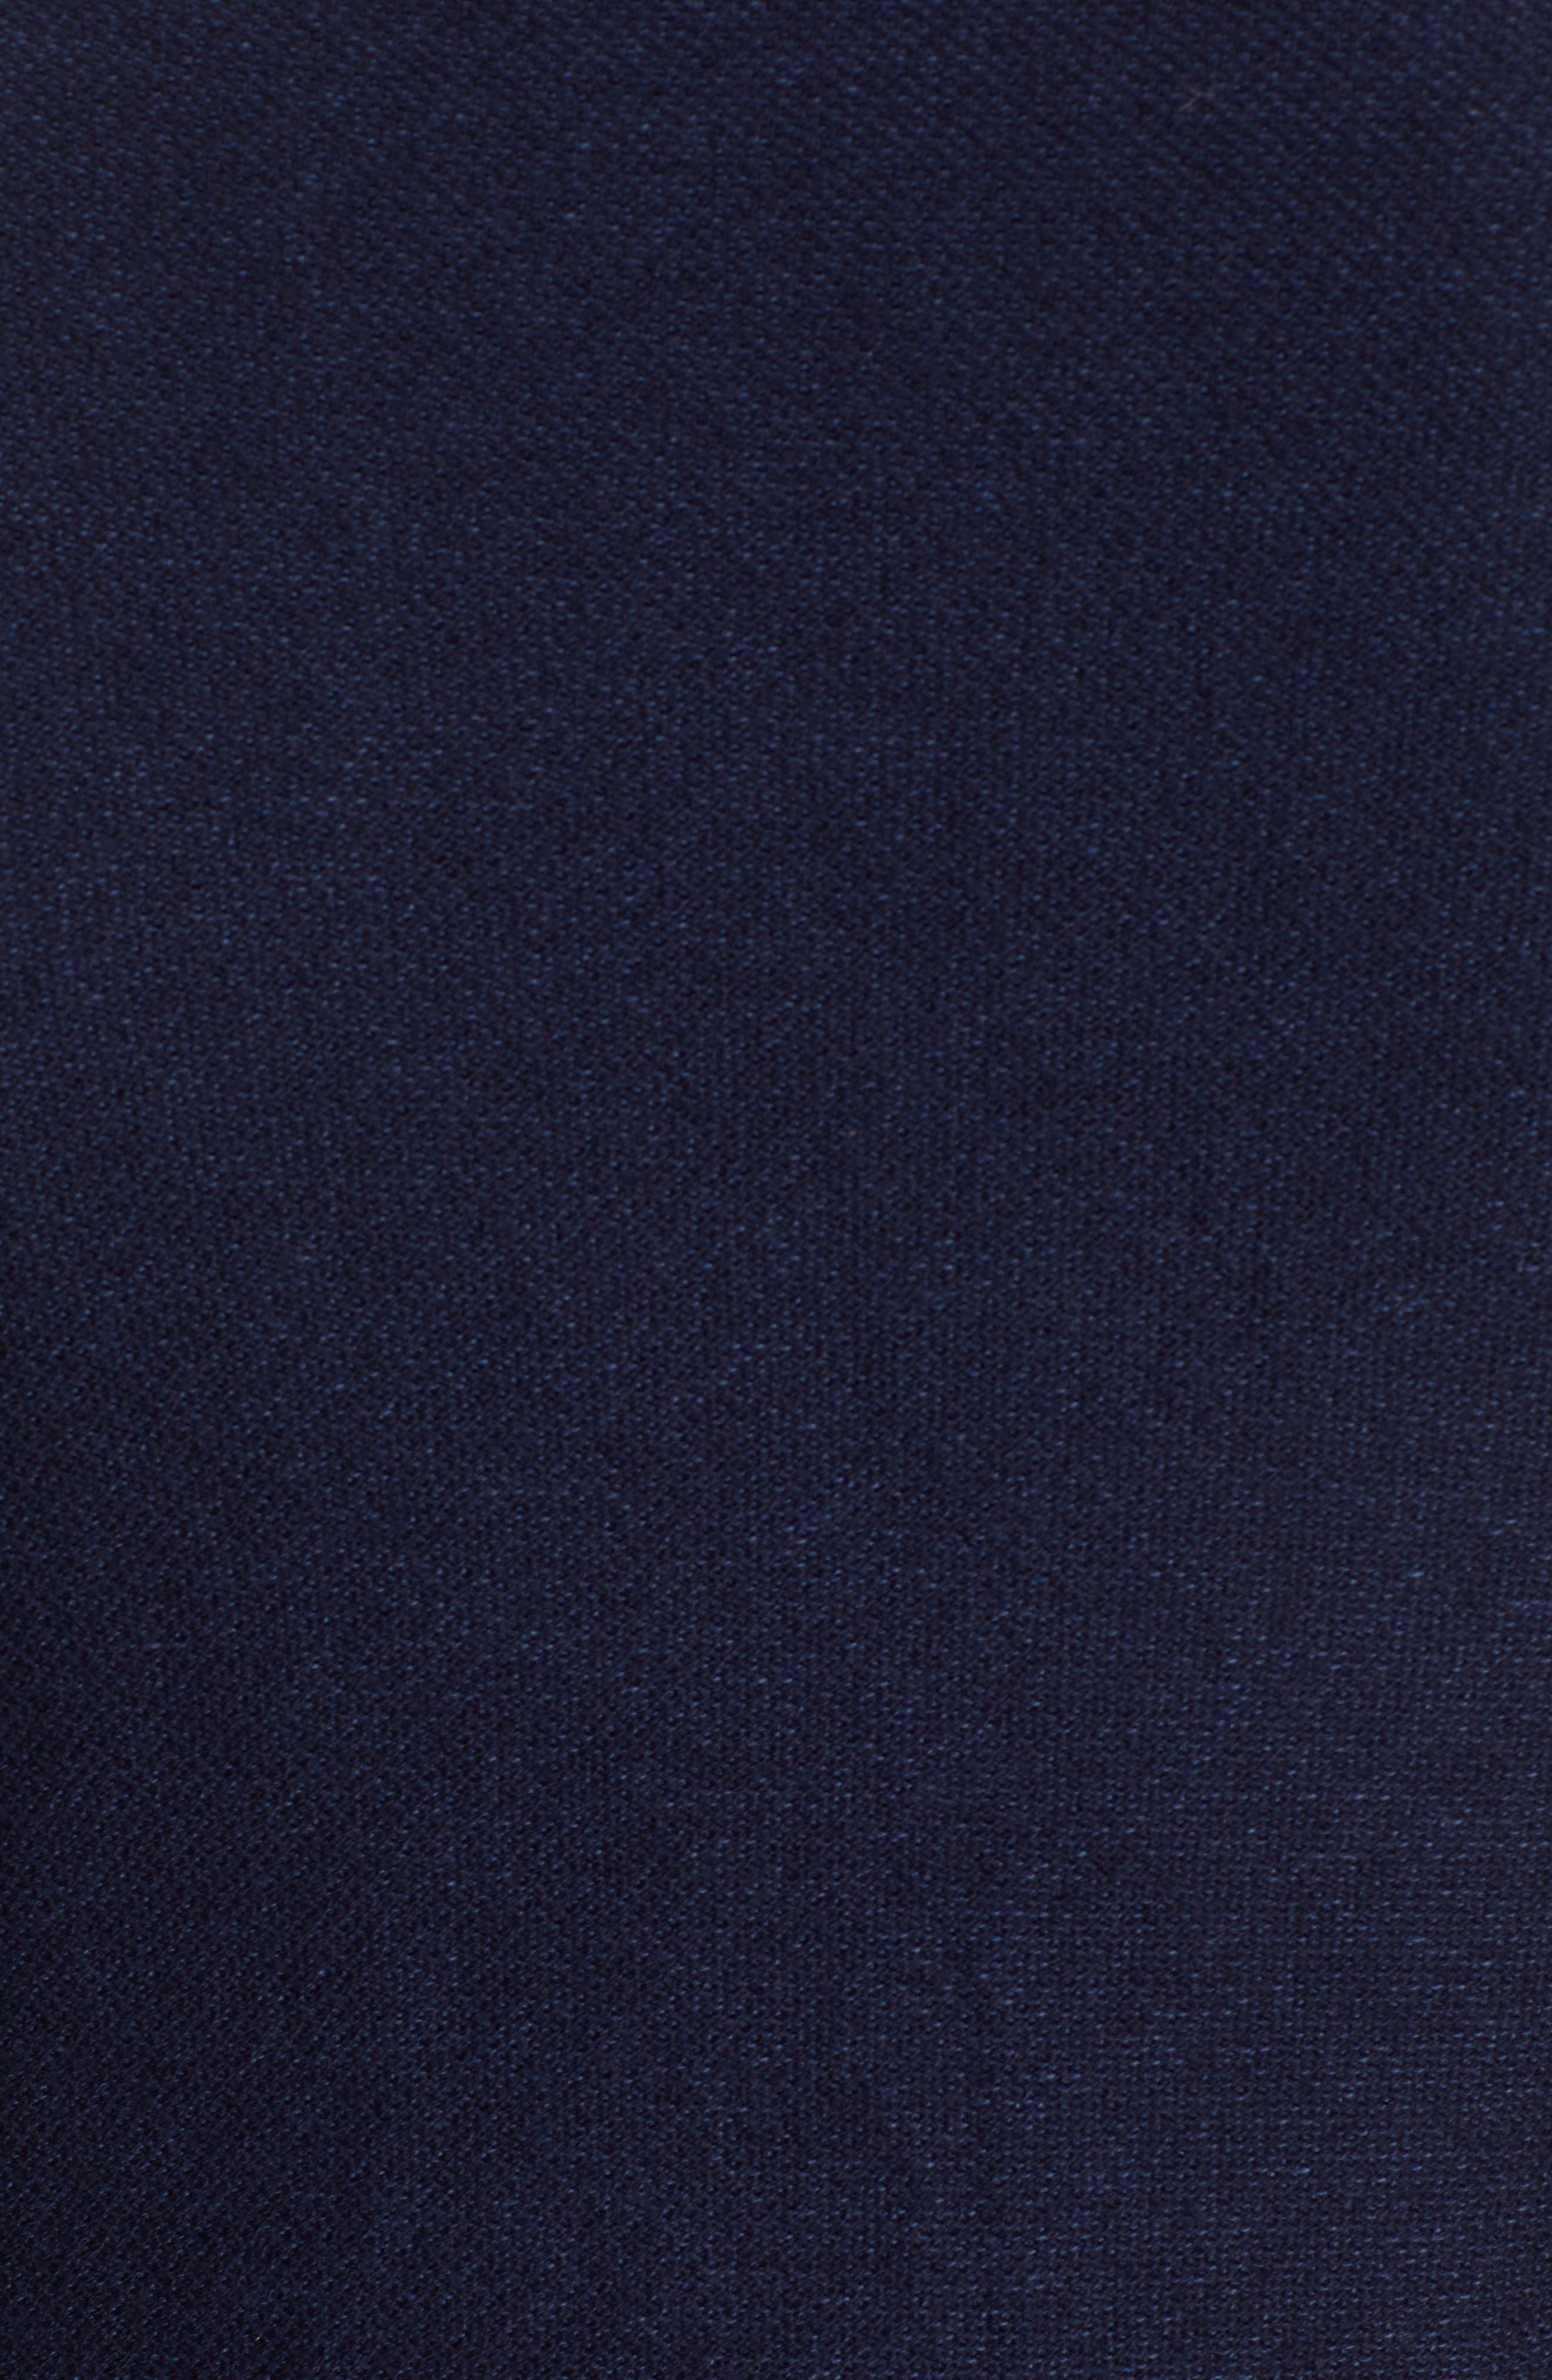 Cotton & Cashmere Bomber Sweater,                             Alternate thumbnail 5, color,                             MIDNIGHT BLUE